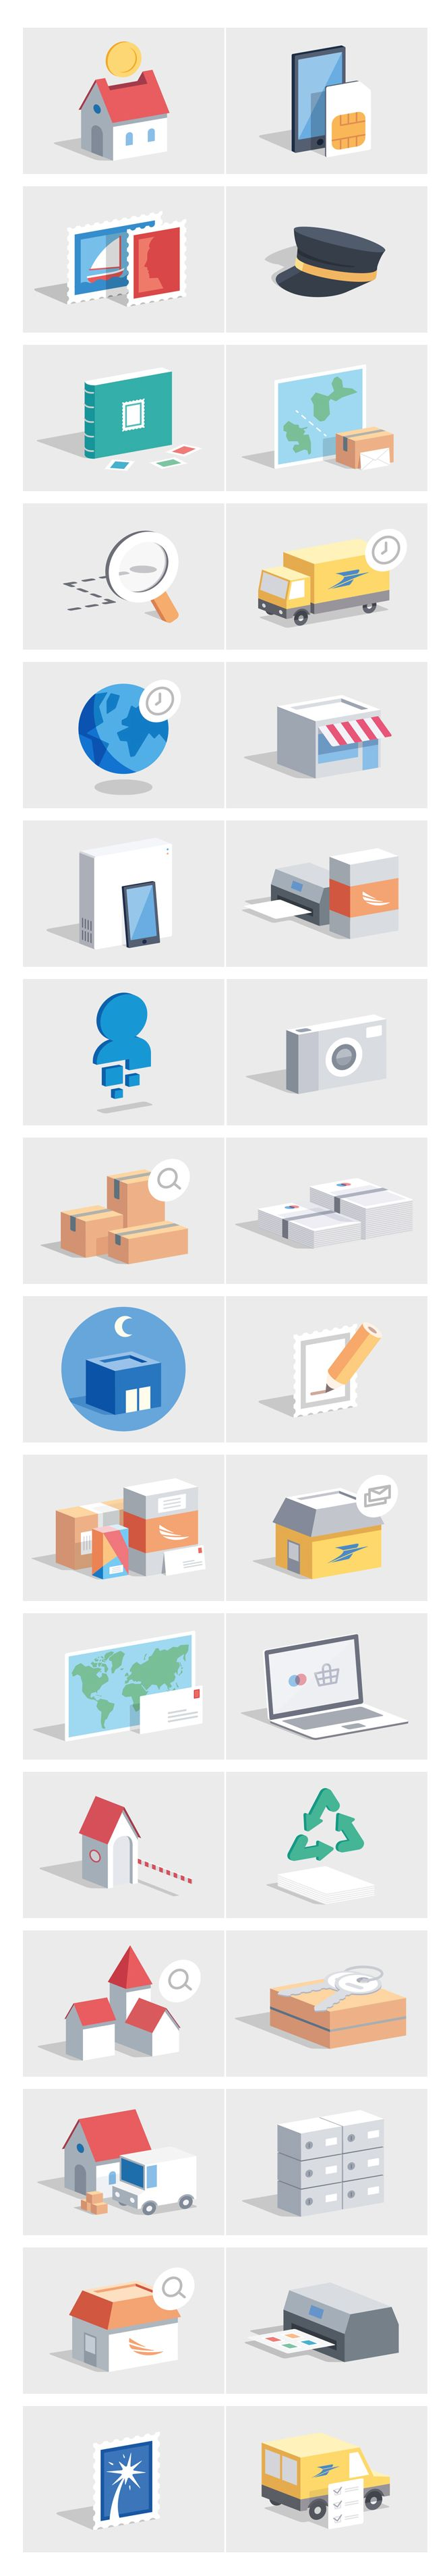 Look at that! Flat icons escaped to a new dimension. https://www.behance.net/gallery/20126697/La-Poste